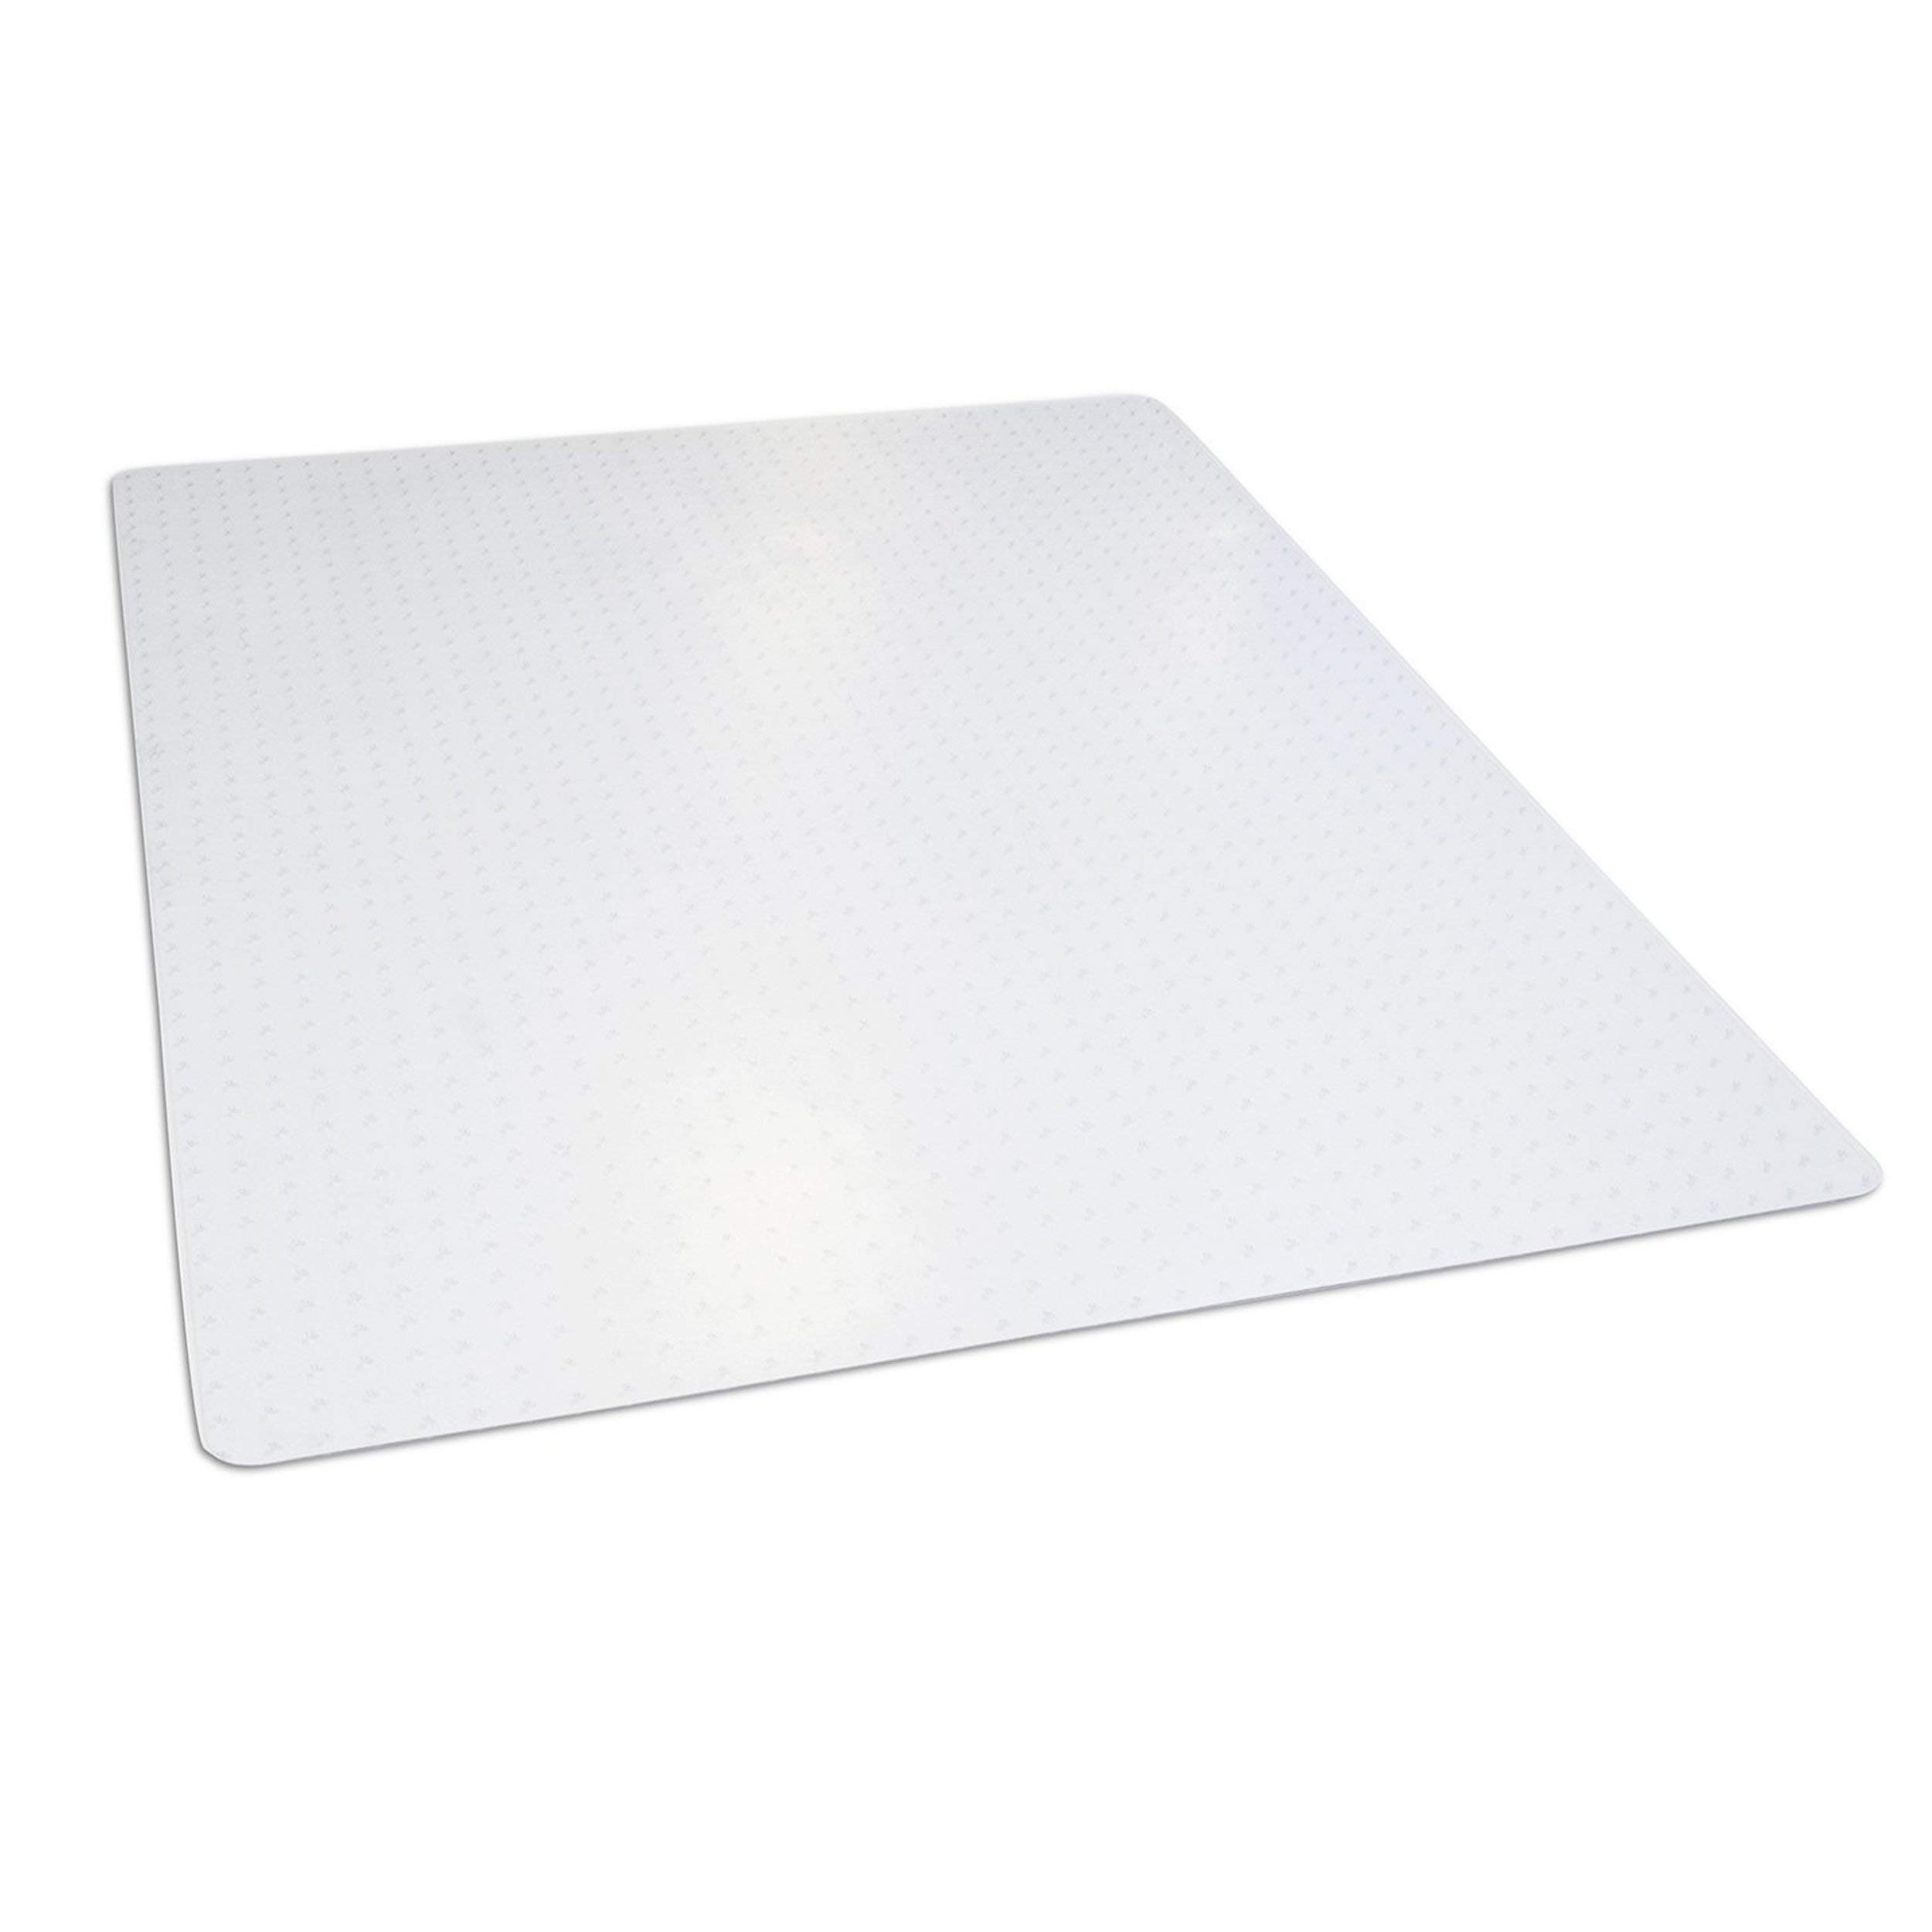 Dimex 46inx 60in Clear Rectangle Office Chair Mat For Low Pile Carpet, Made In The USA, BPA And Phthalate Free, C532001G (Renewed)